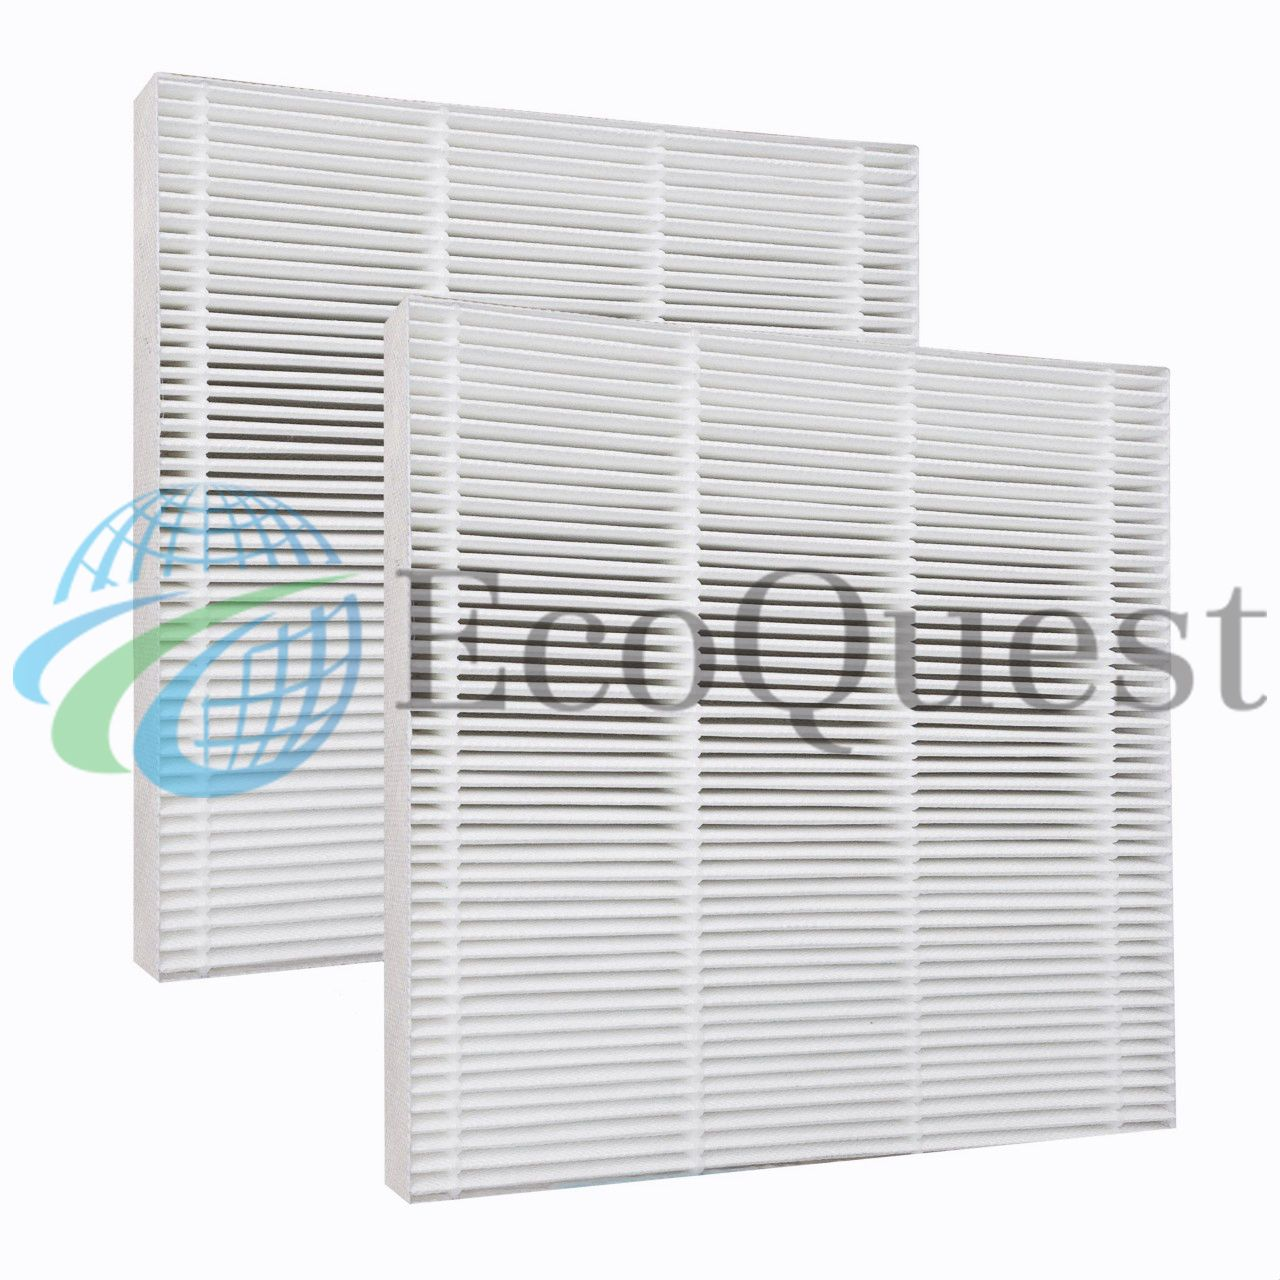 2 HEPA FILTERS For Fresh Air by Ecoquest Hepa filter